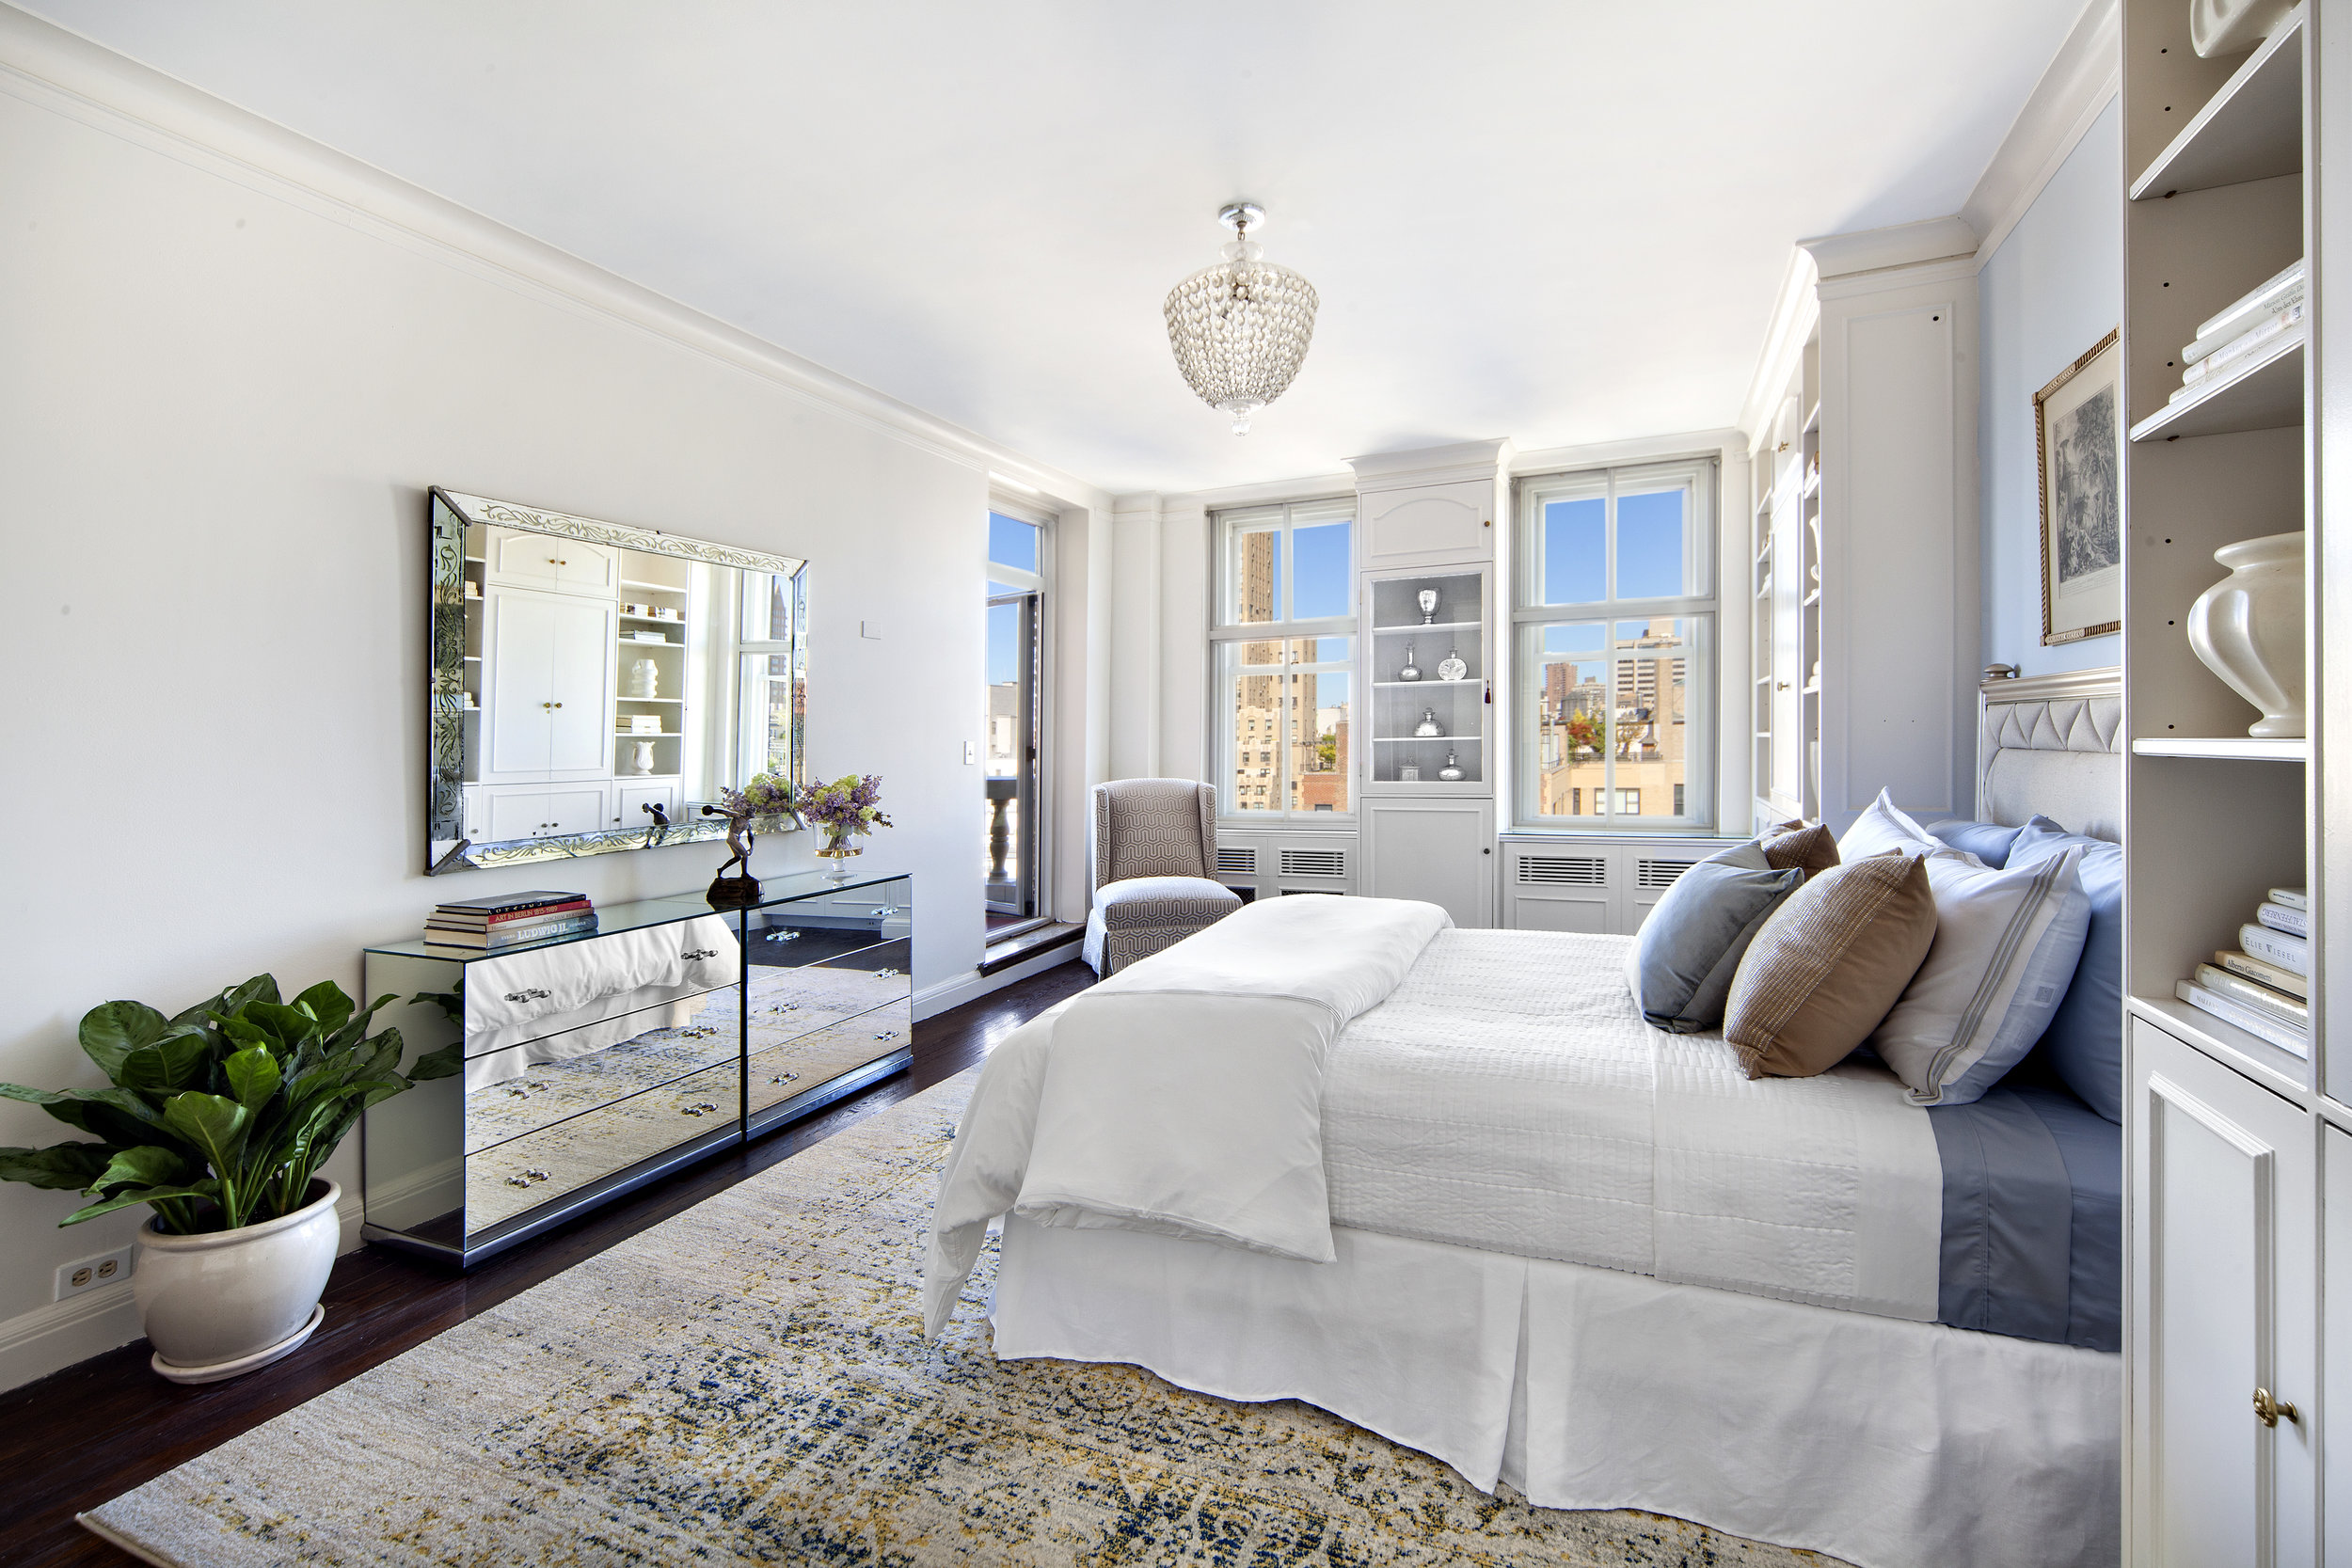 Featured Listing: Check-Out the Luxurious Park Avenue Duplex That Just Hit The Market For The First Time Since 1930